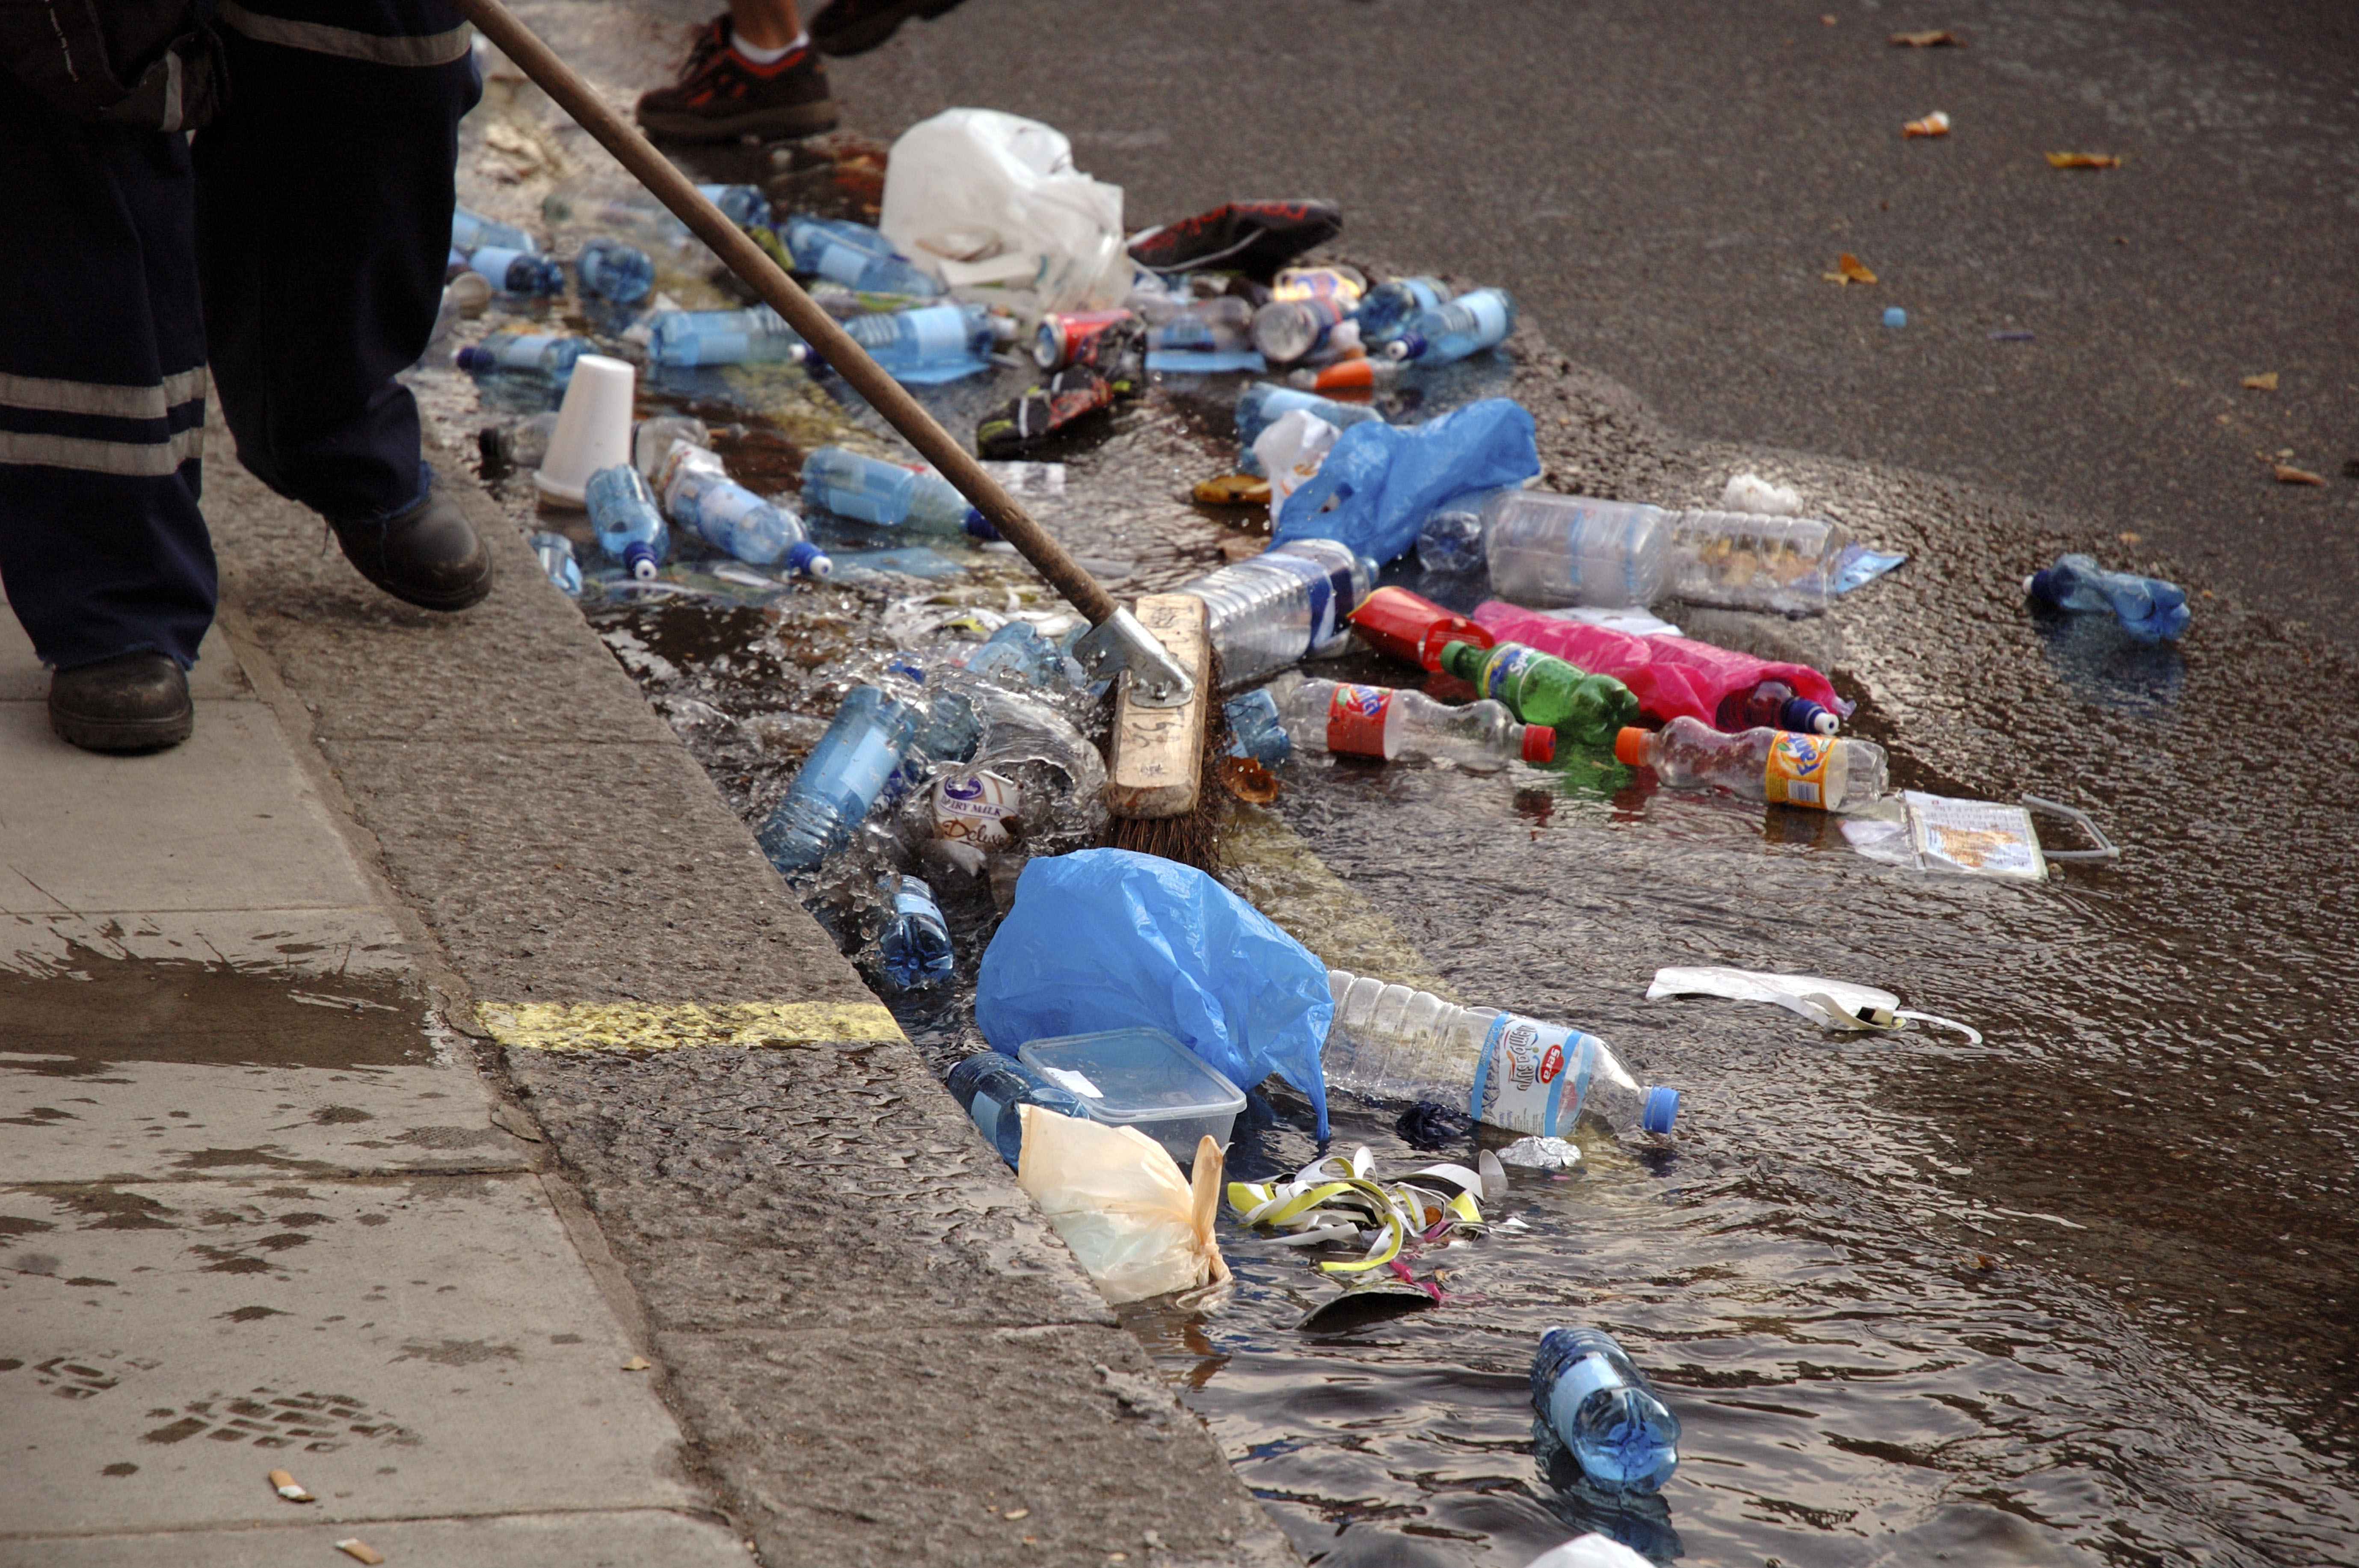 Street cleaners in central London clearing debris (Picture: Getty Images)